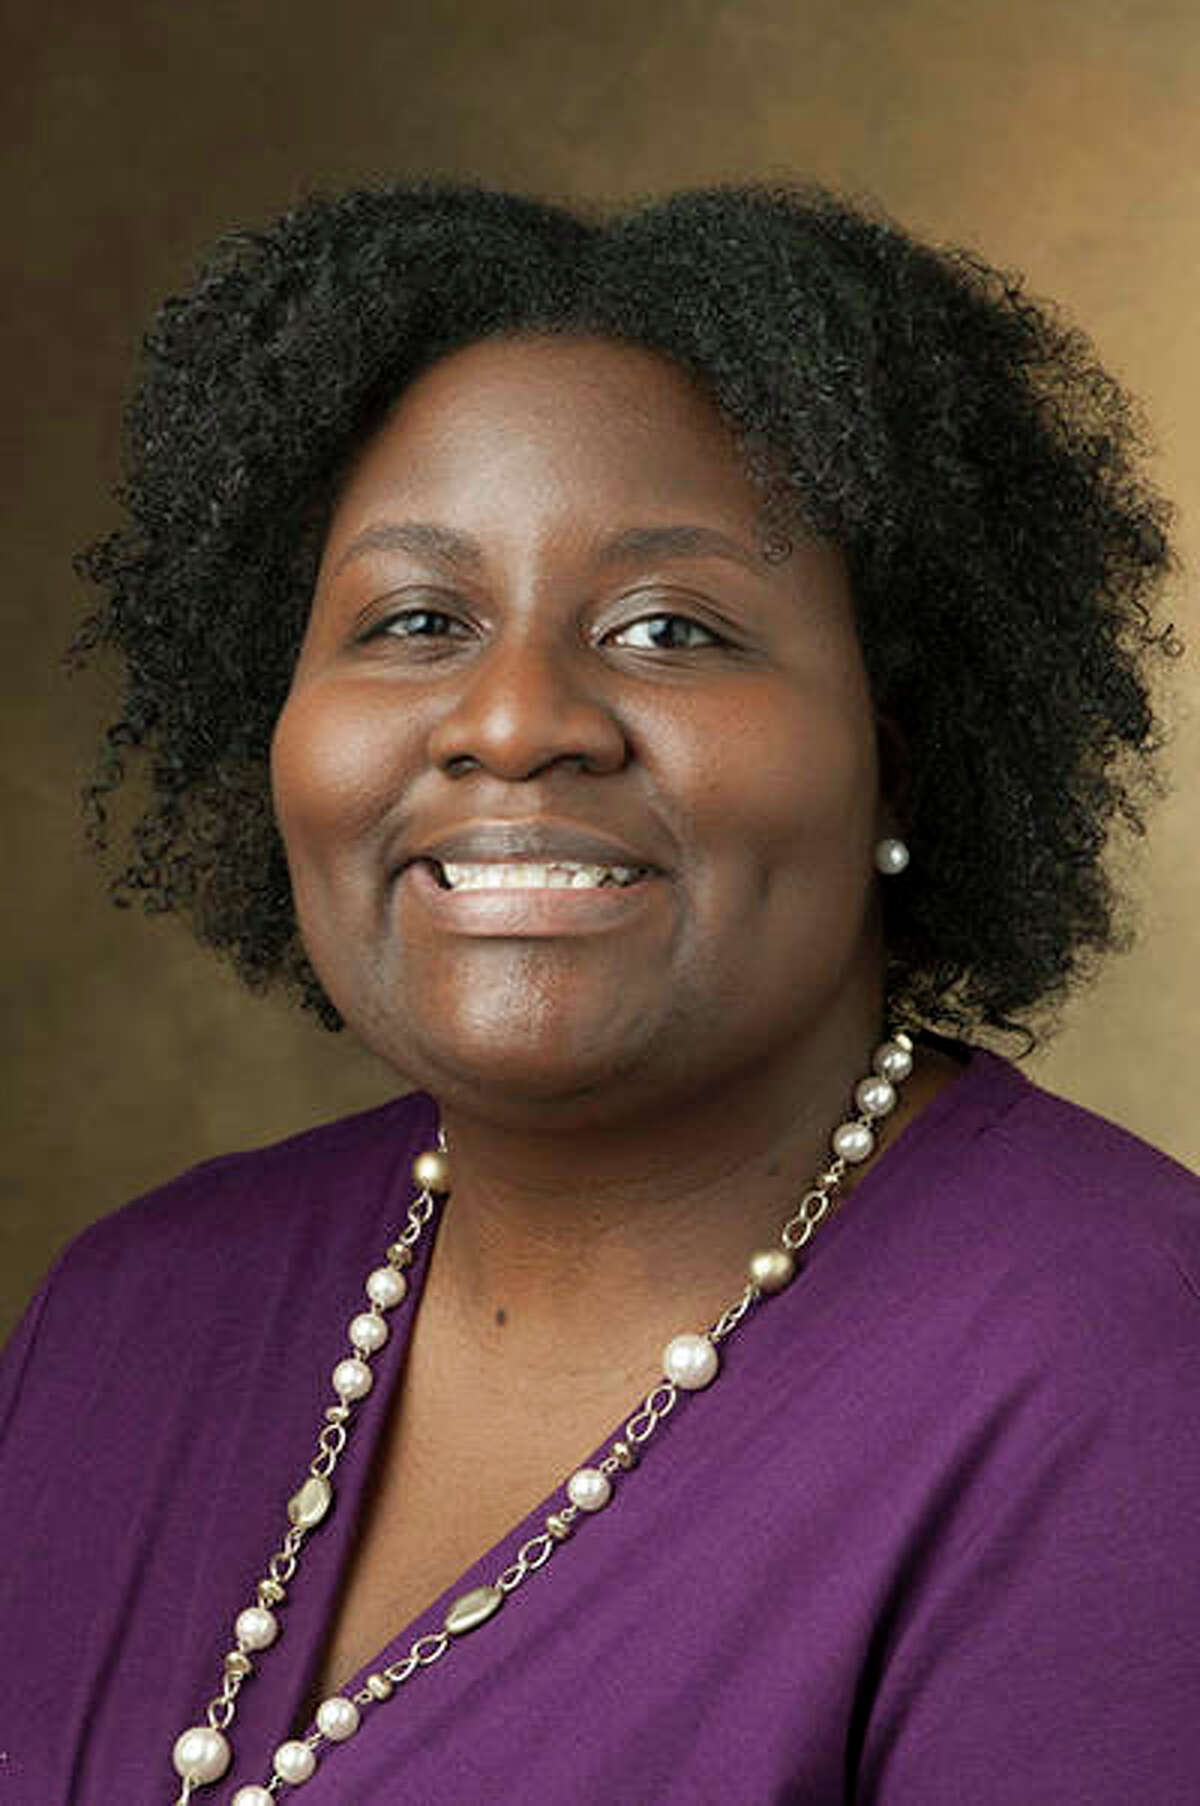 SIUE Vice Chancellor for Equity, Diversity and Inclusion Jessica Harris.